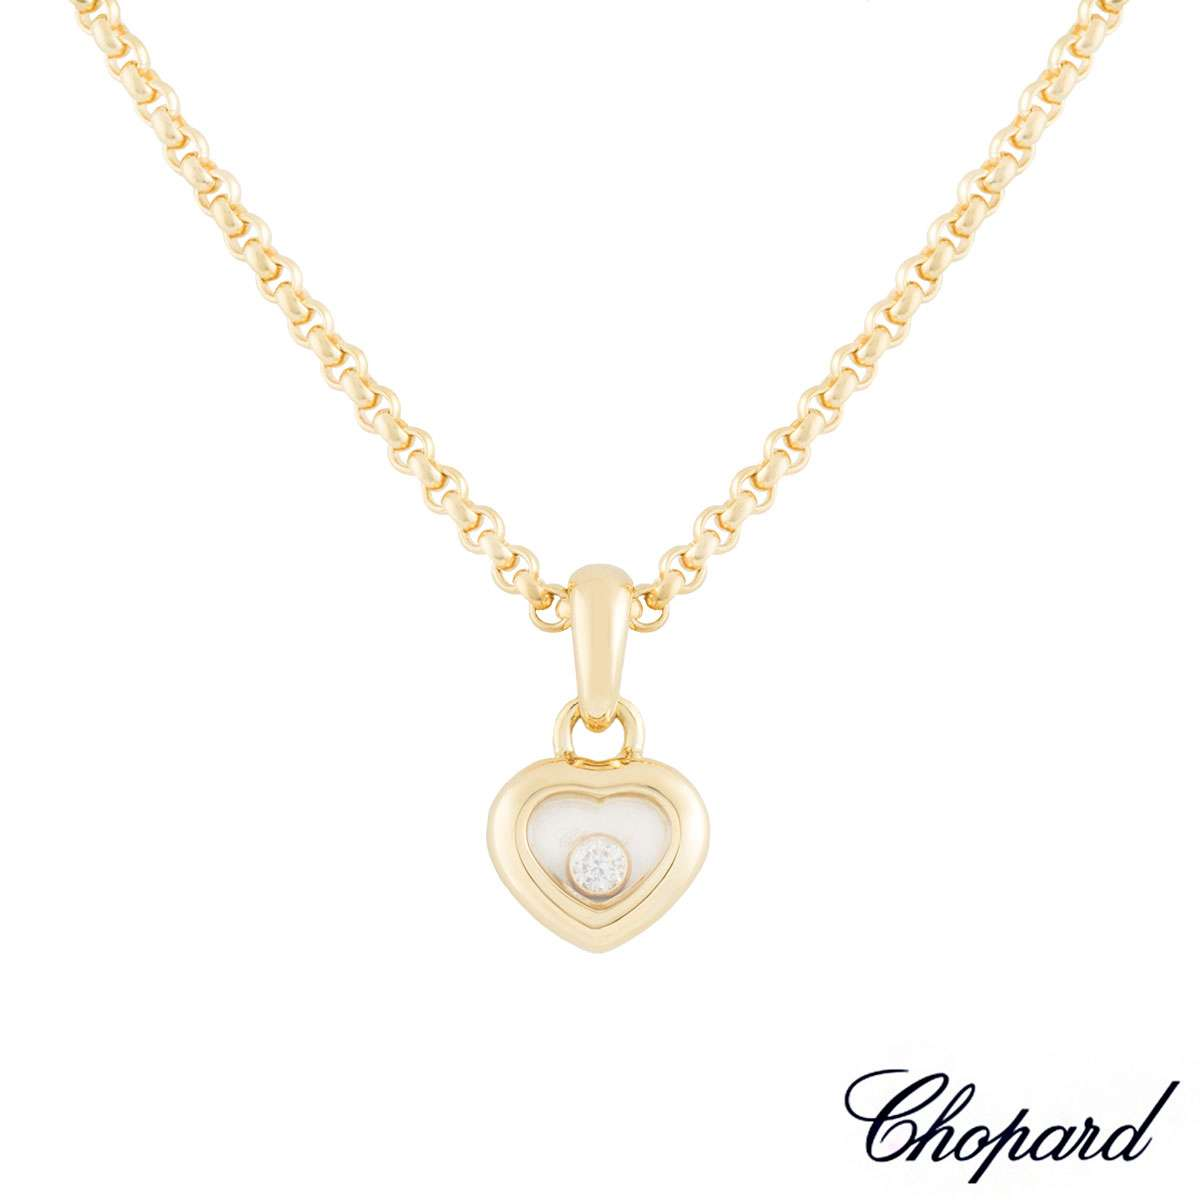 Chopard yellow gold happy diamonds pendant 794854 rich diamonds chopard yellow gold happy diamonds pendant 794854 aloadofball